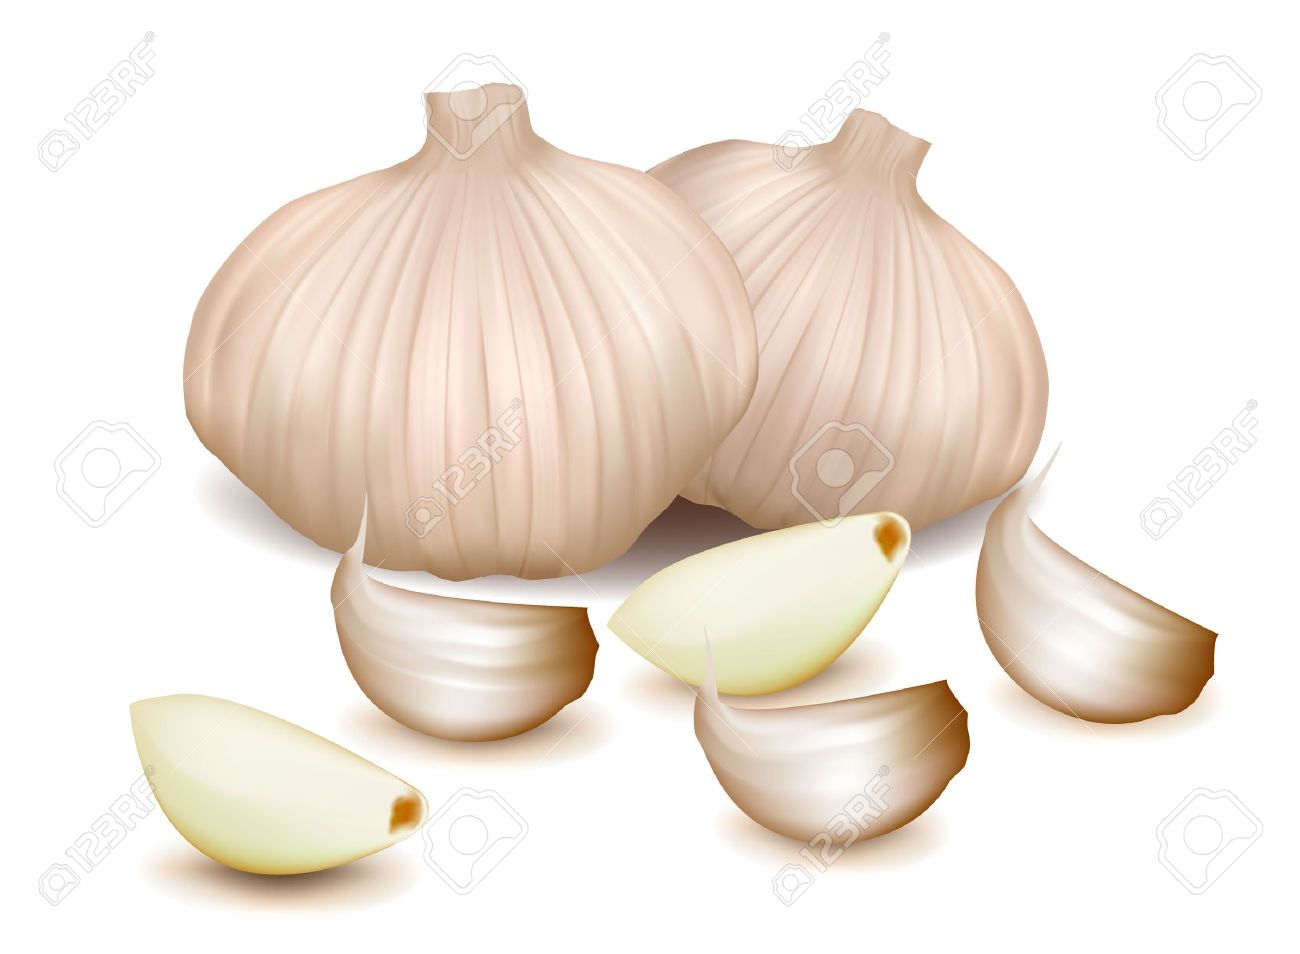 Clove of garlic clipart - Clipground